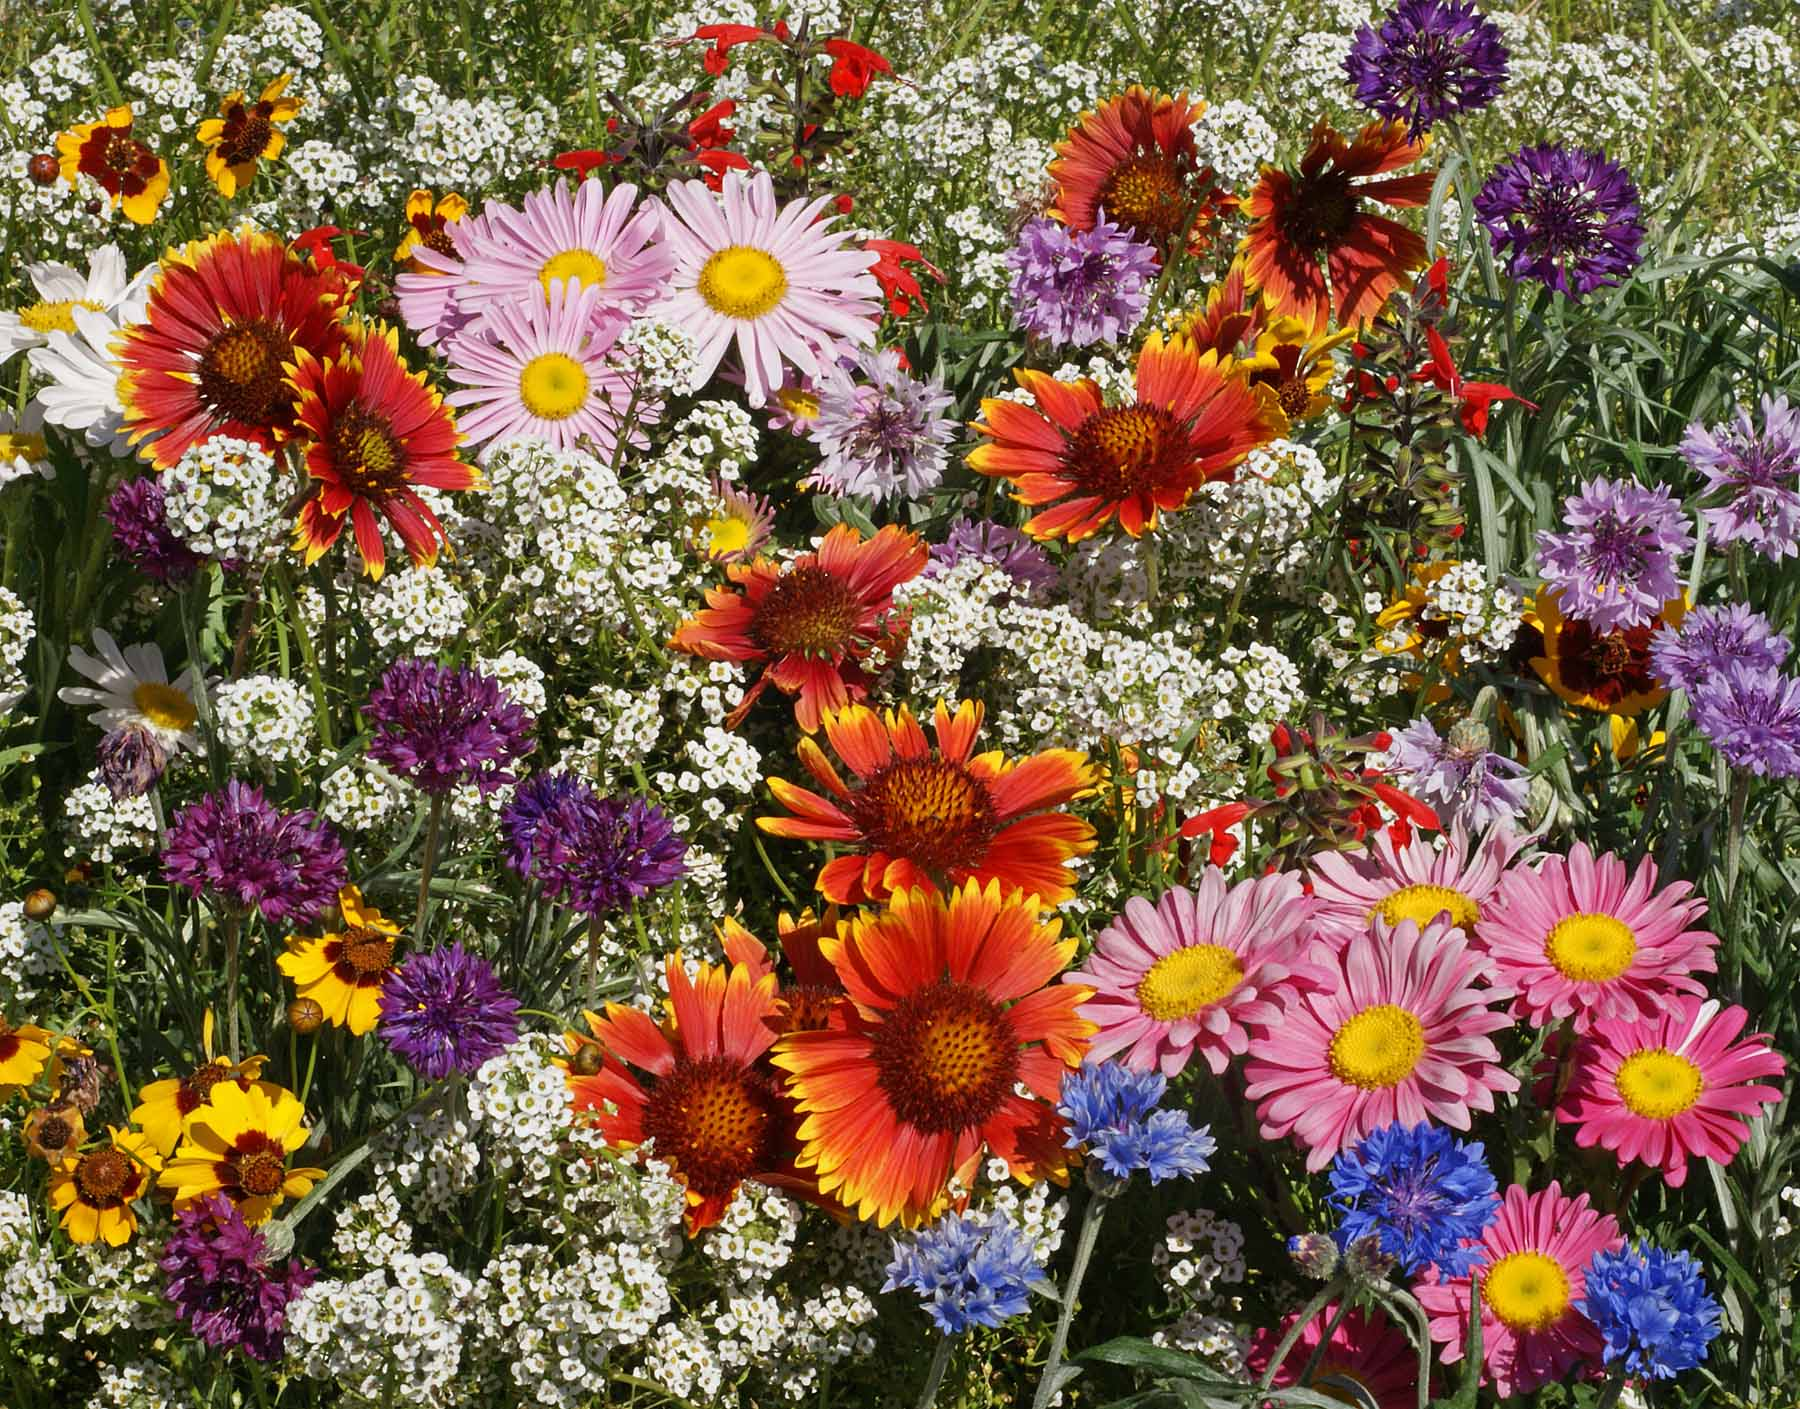 For Beautiful Wildflowers in the Spring, Plant Them in the Fall